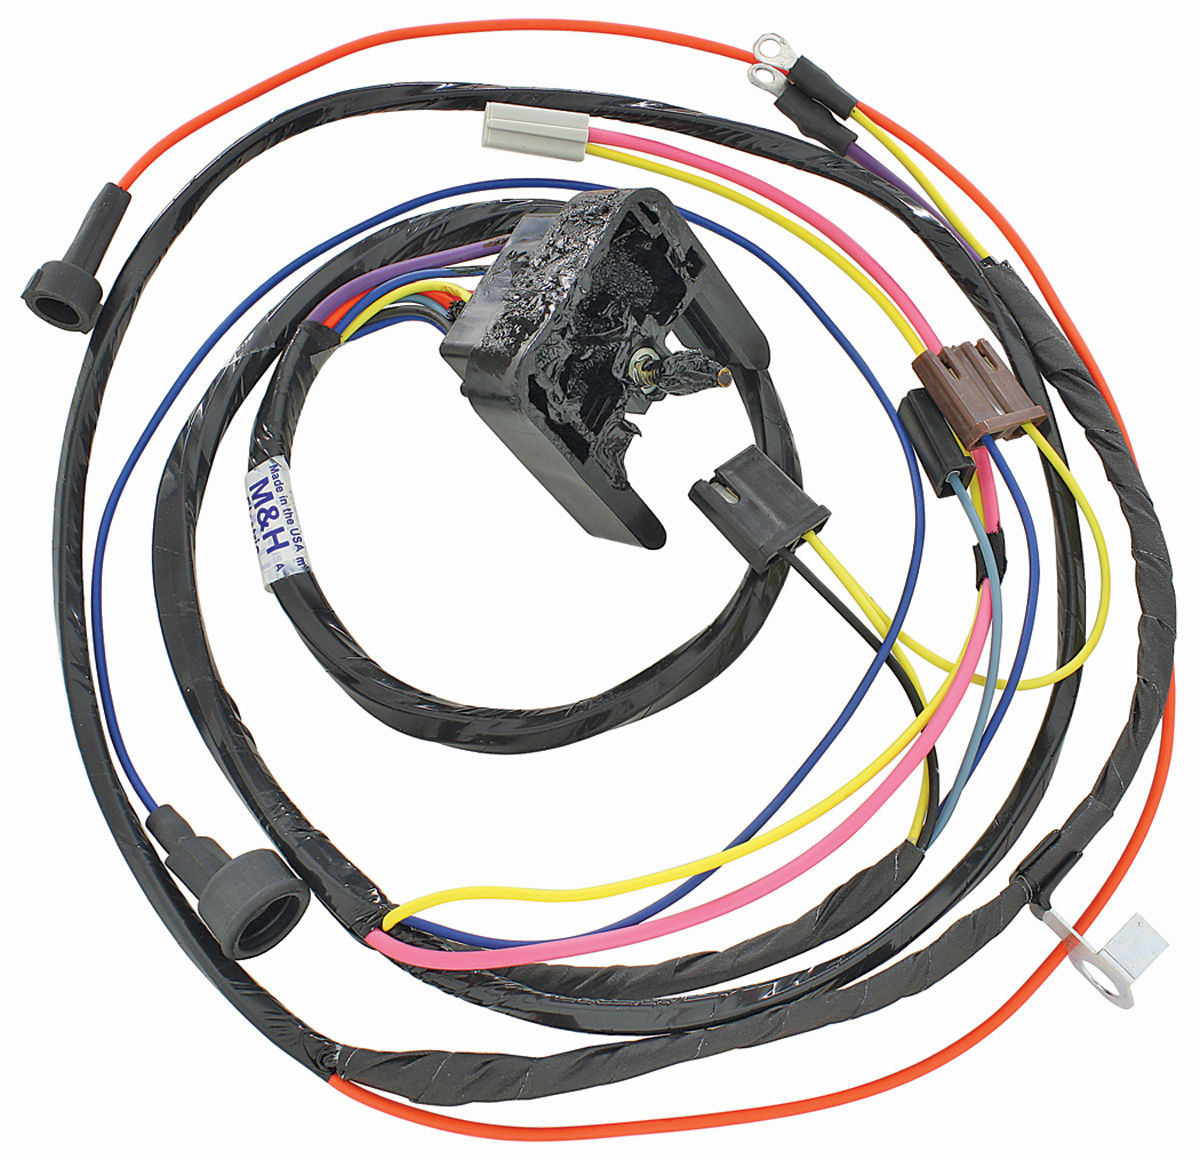 38947 lrg?v=102520130818 m&h 1968 69 chevelle engine harness 396 hei w warning lights GMC Engine Wiring Harness Diagram at edmiracle.co